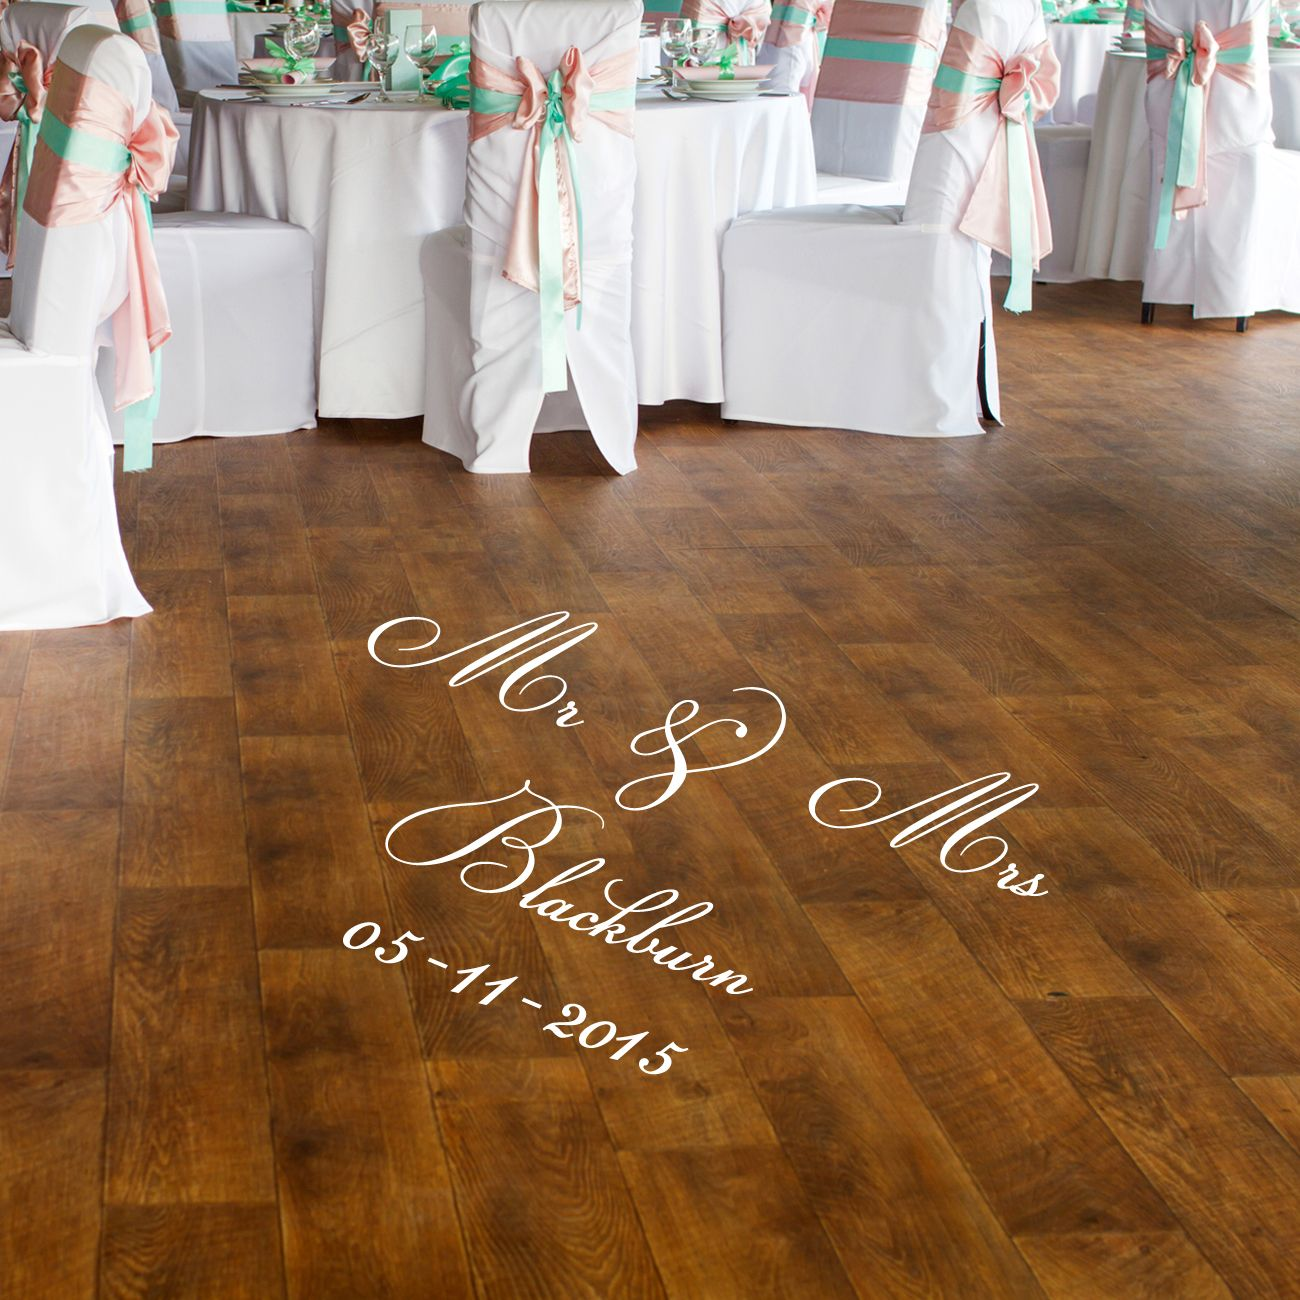 Mr mrs dance floor decal personalised vinyl